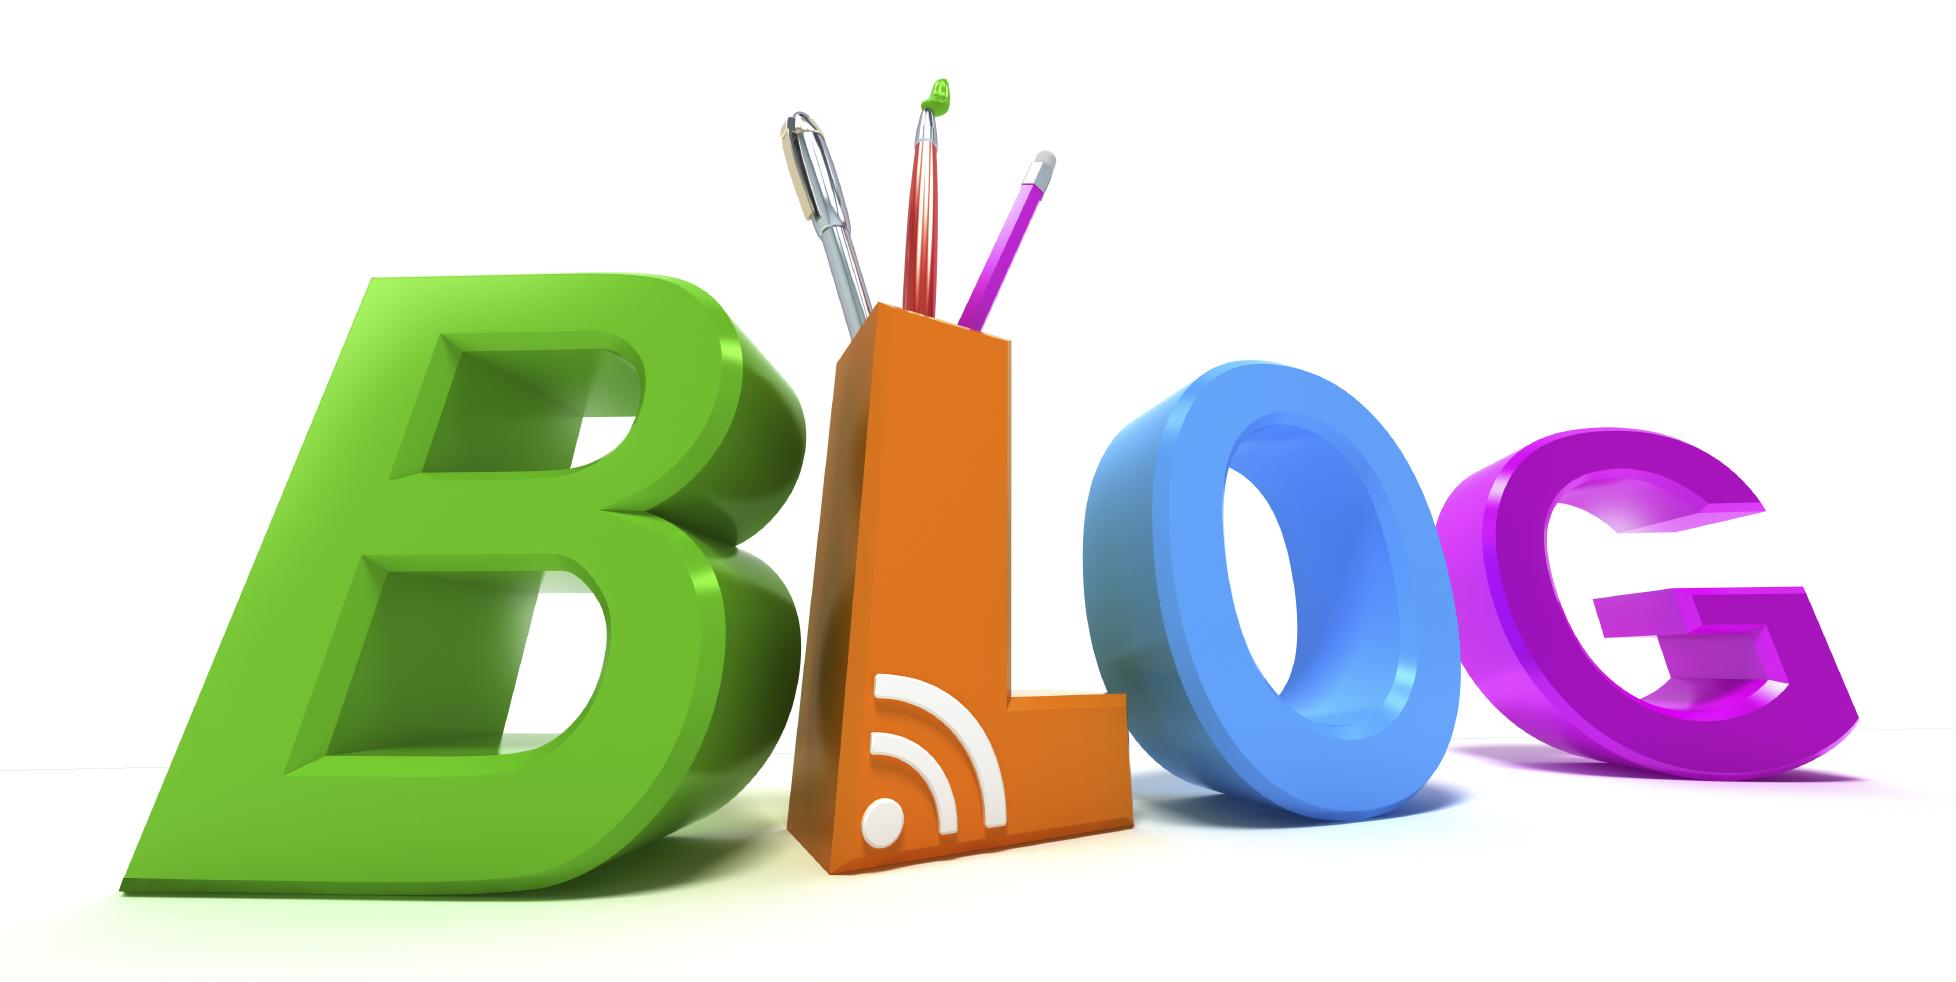 Blogs as Marketing Tools. A Blog Copywriter Can Help Grow Your Business